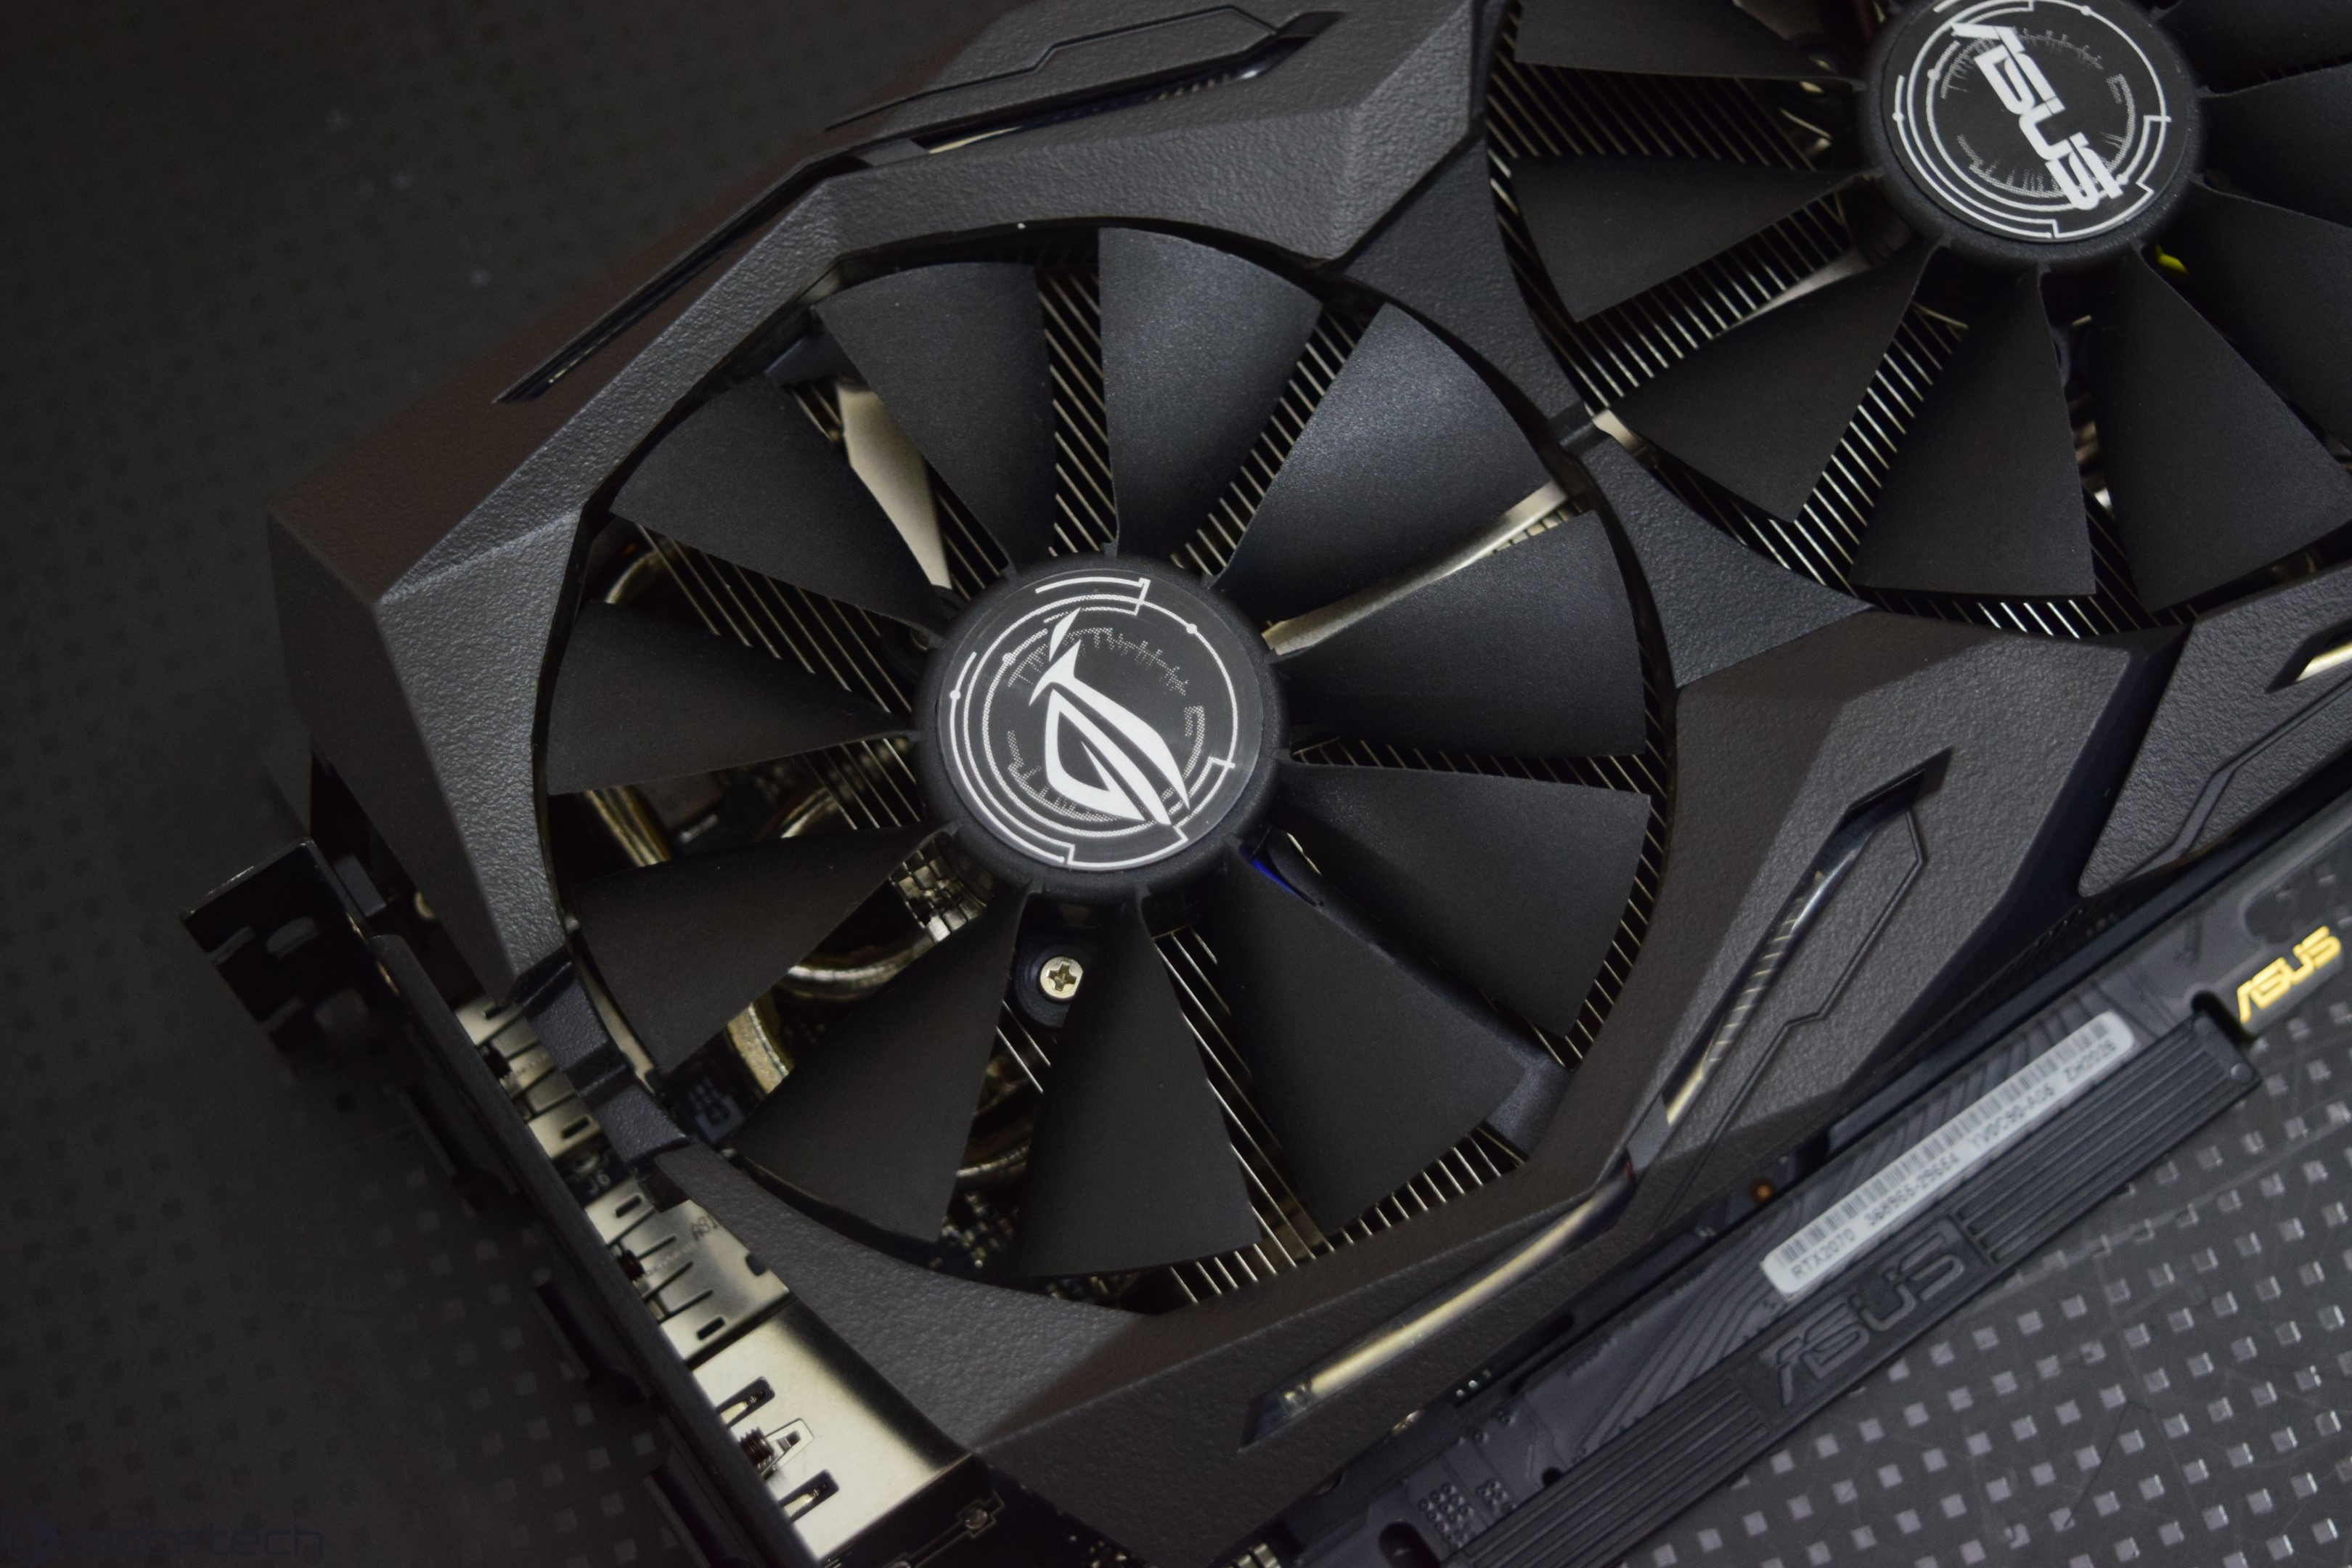 NVIDIA GeForce RTX 2070 8 GB GDDR6 Graphics Card Review FT